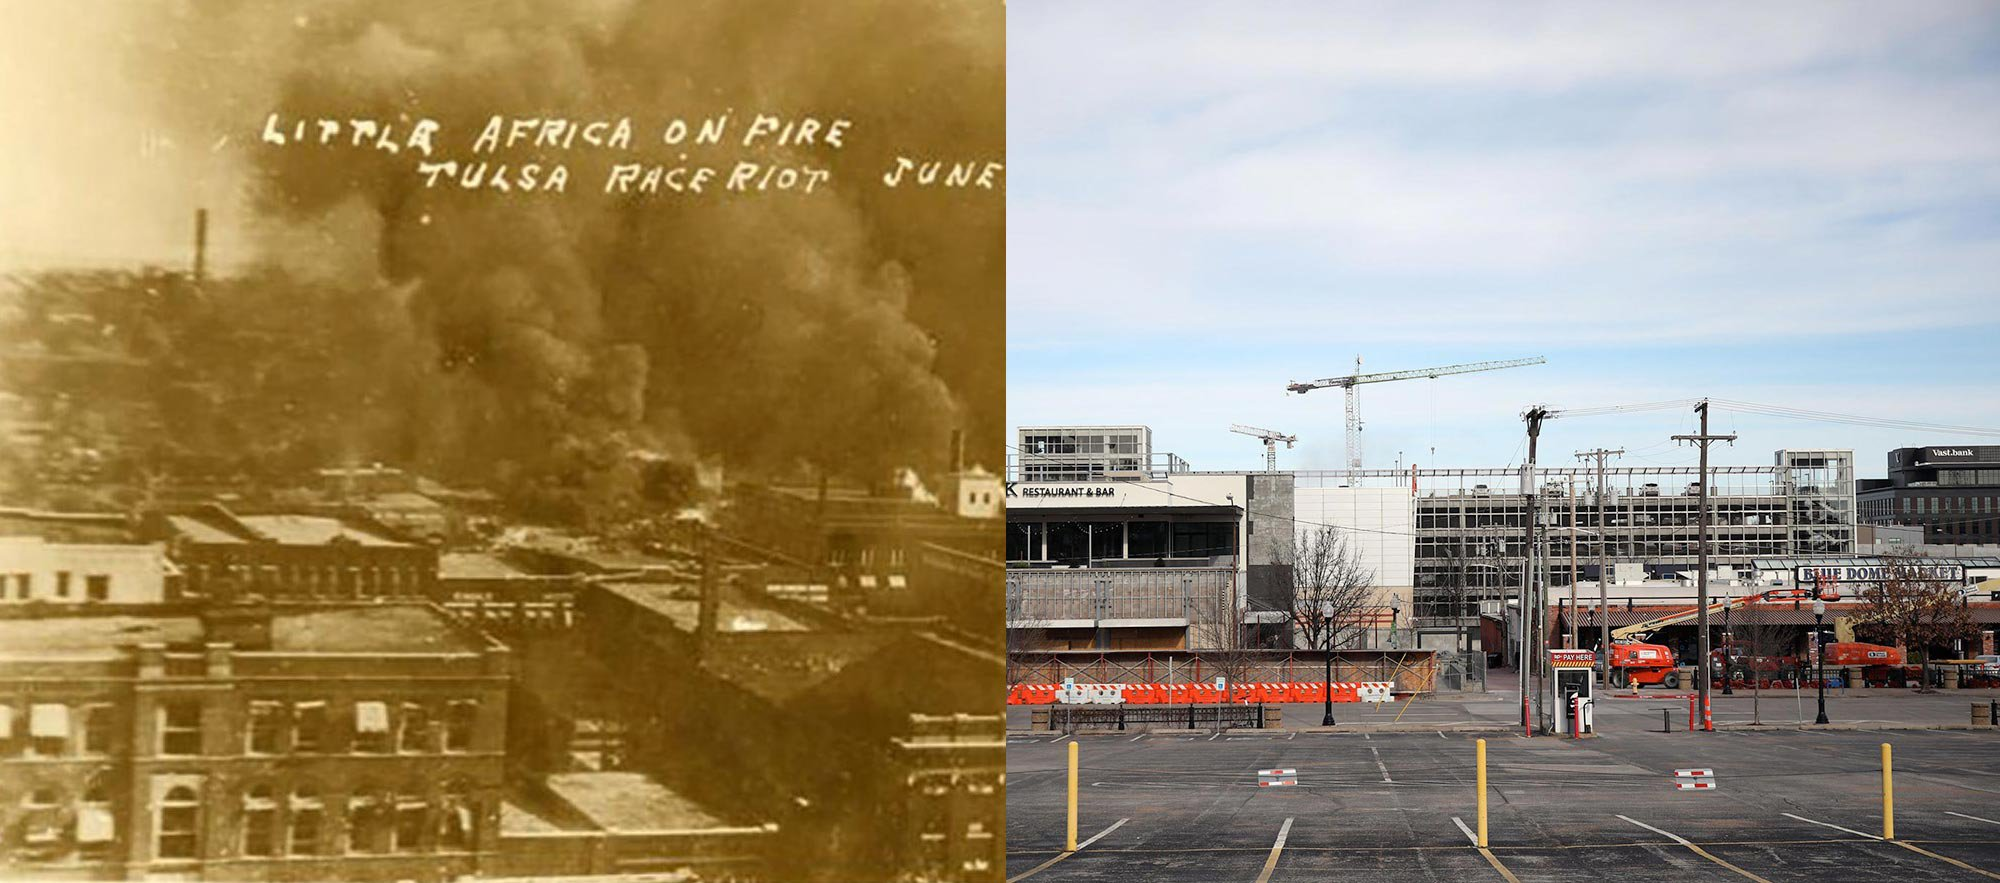 Greenwood-then-and-now-sig-art.jpg